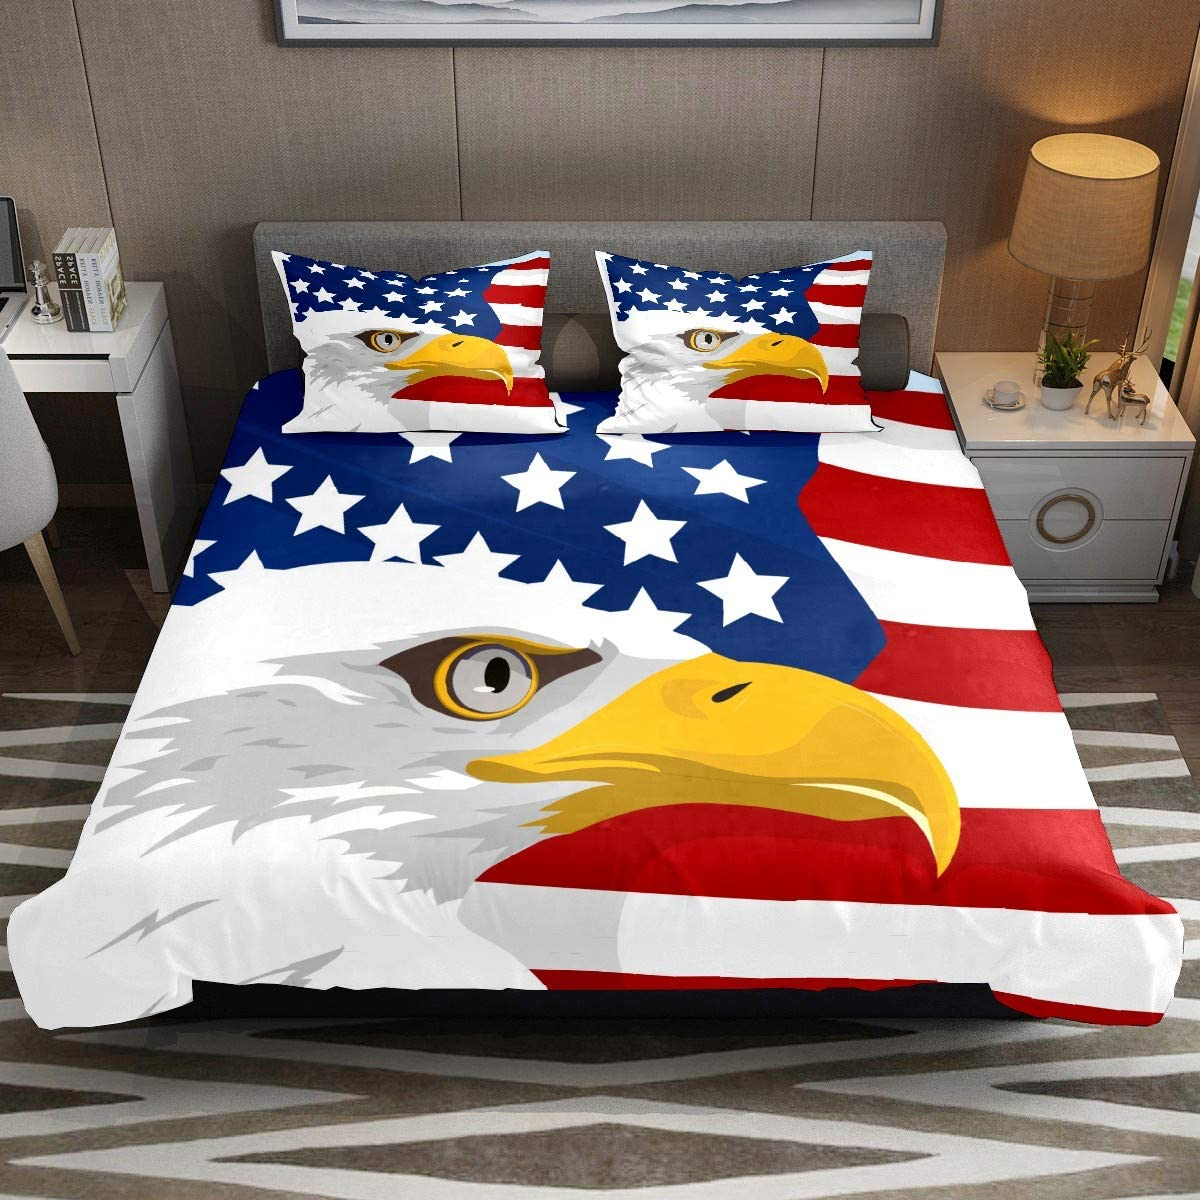 American Eagle USA Flag Comforter Cover Set XL Size 3pcs Duvet Cover Bedding Sets & Collections with Zipper Ties for Woman Teens Kids Modern Customize (1 Quilt Cover +2 Pillowcases)